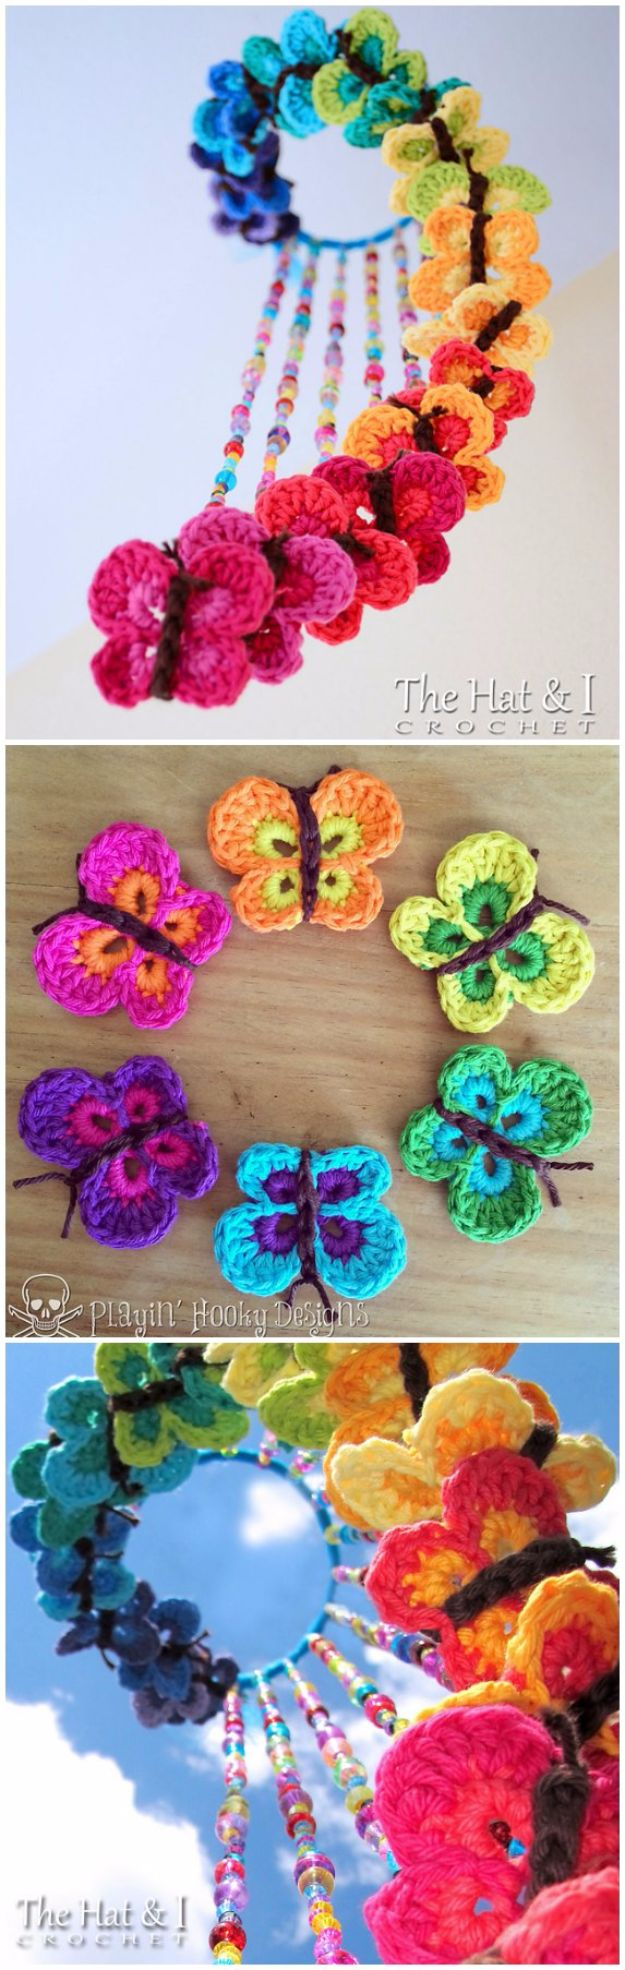 DIY Ideas With Butterflies - Crochet Butterfly Mobile - Cute and Easy DIY Projects for Butterfly Lovers - Wall and Home Decor Projects, Things To Make and Sell on Etsy - Quick Gifts to Make for Friends and Family - Homemade No Sew Projects- Fun Jewelry, Cool Clothes and Accessories #diyideas #butterflies #teencrafts